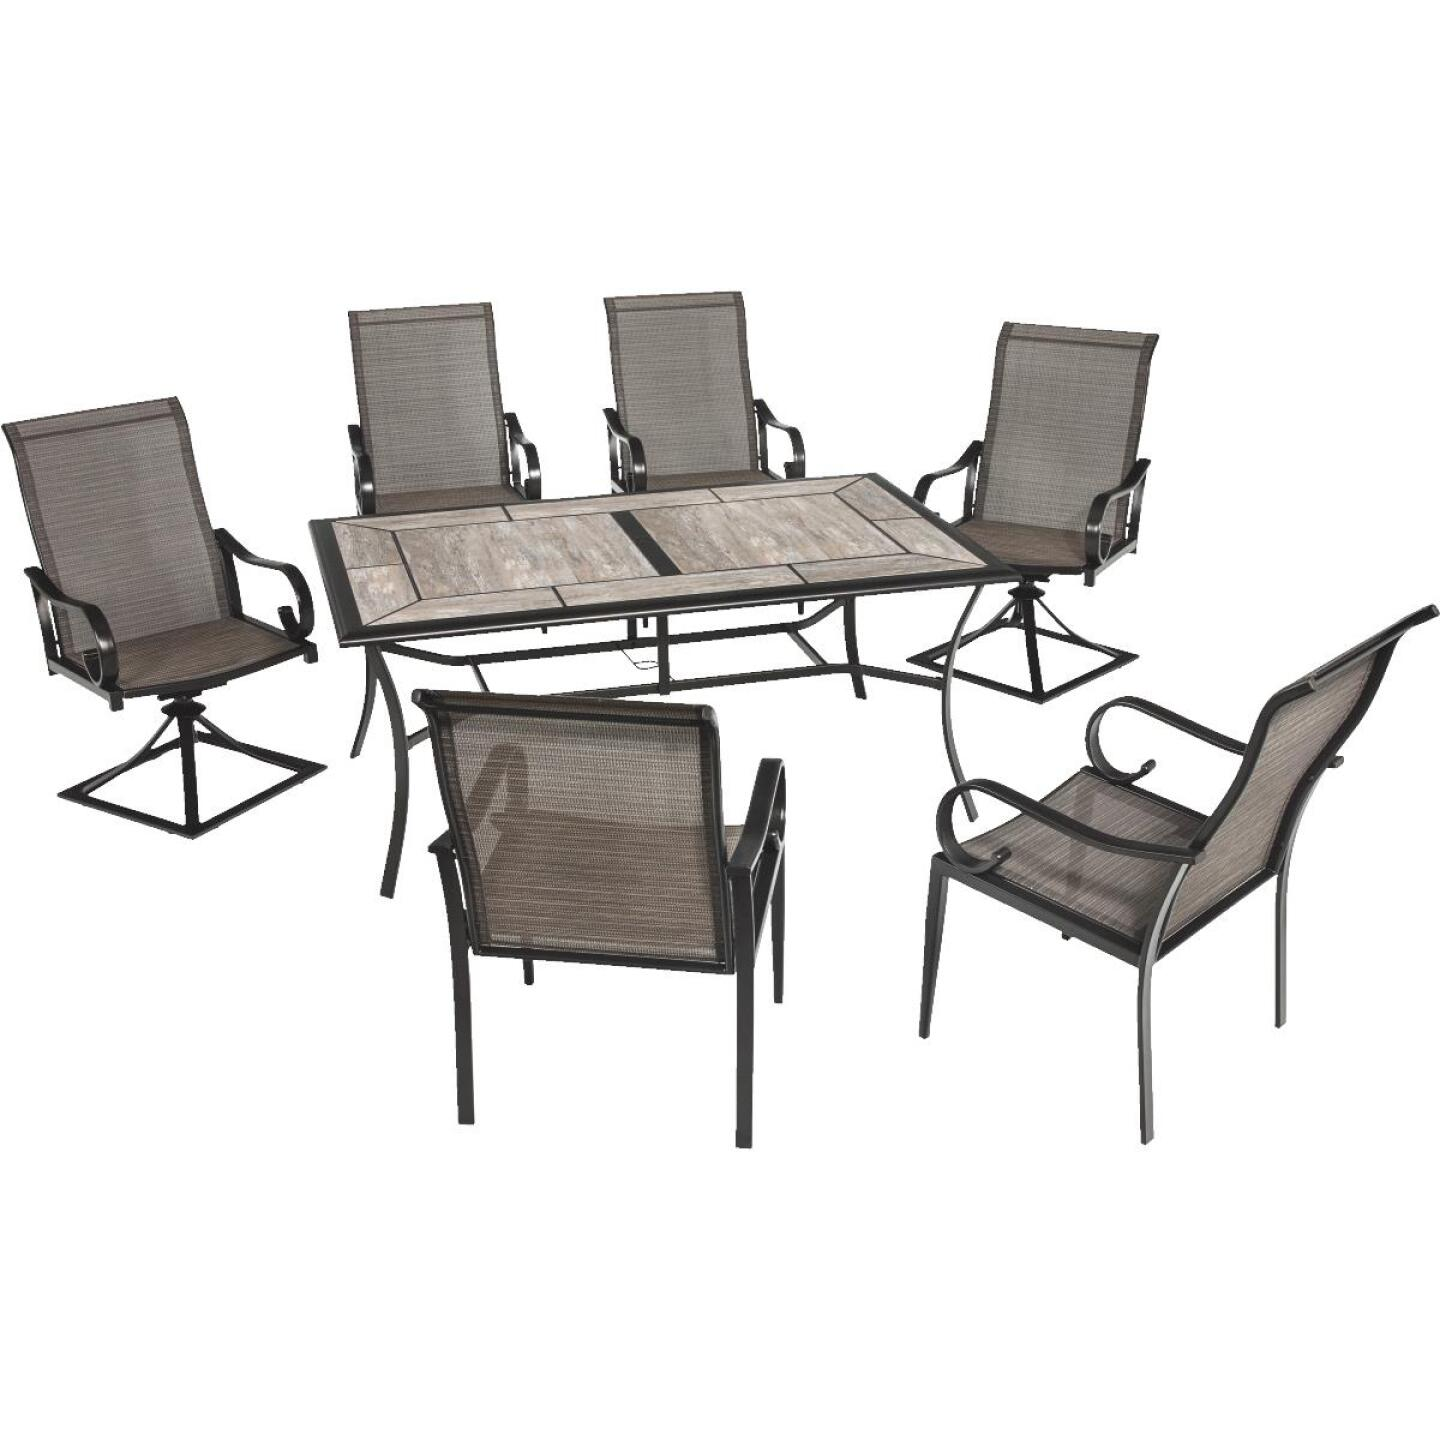 Outdoor Expressions Berkshire 7-Piece Dining Set Image 348